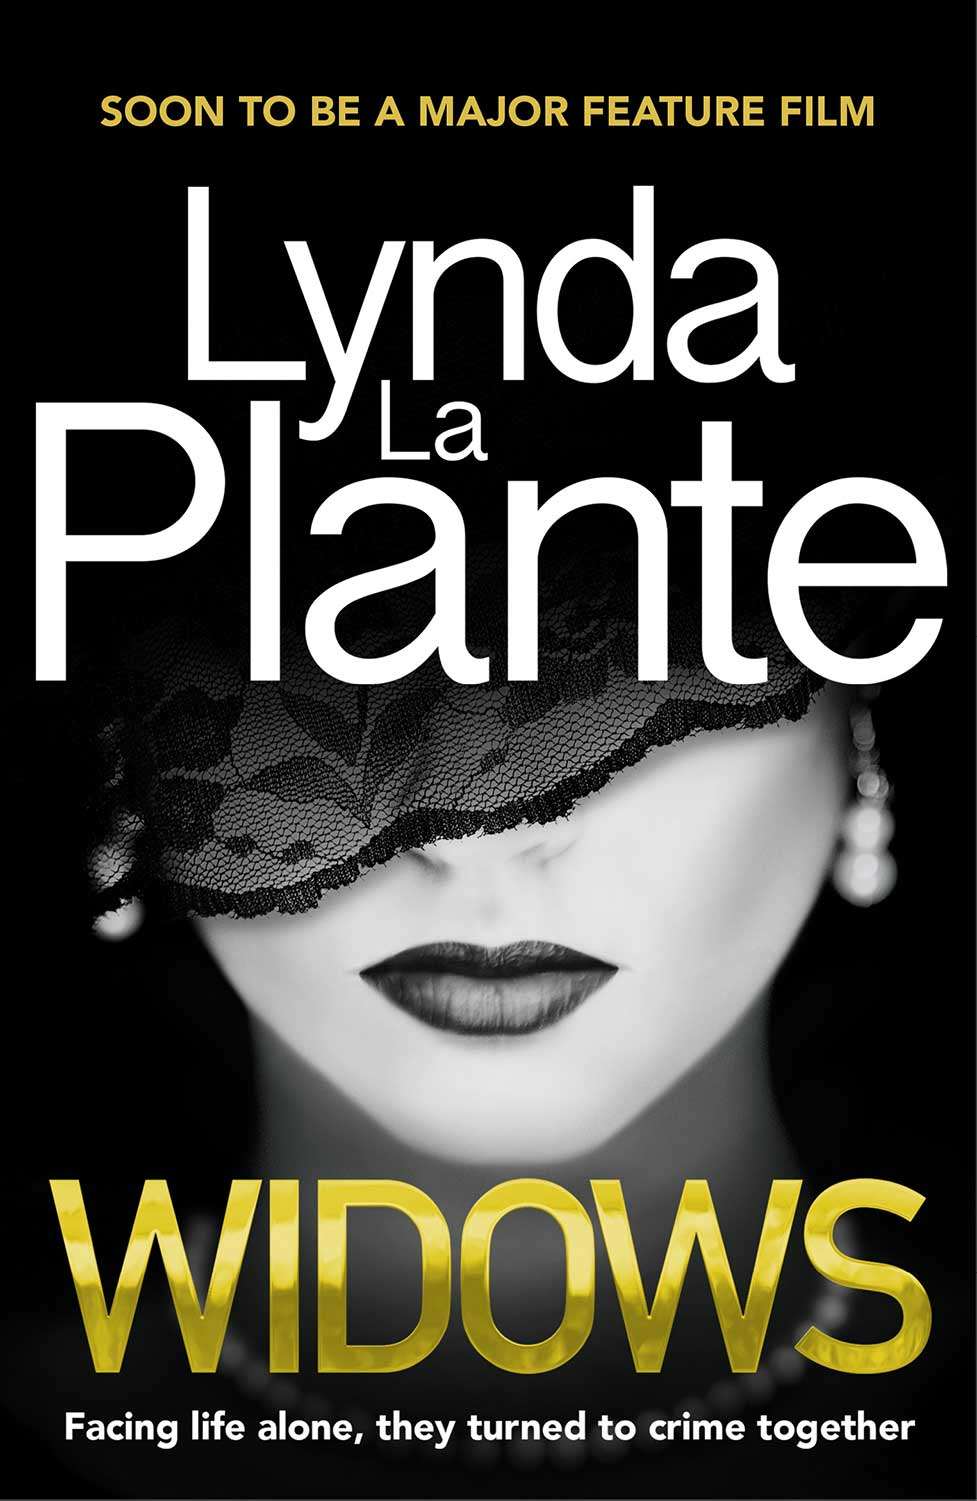 Dolly Rawlins\' husband died in a robbery gone wrong and she\'s left with his ledgers, cash, and resources. So she recruits the other widows and finishes the job. Widows by Lynda La Plante is a crime thriller breaking stereotypes.